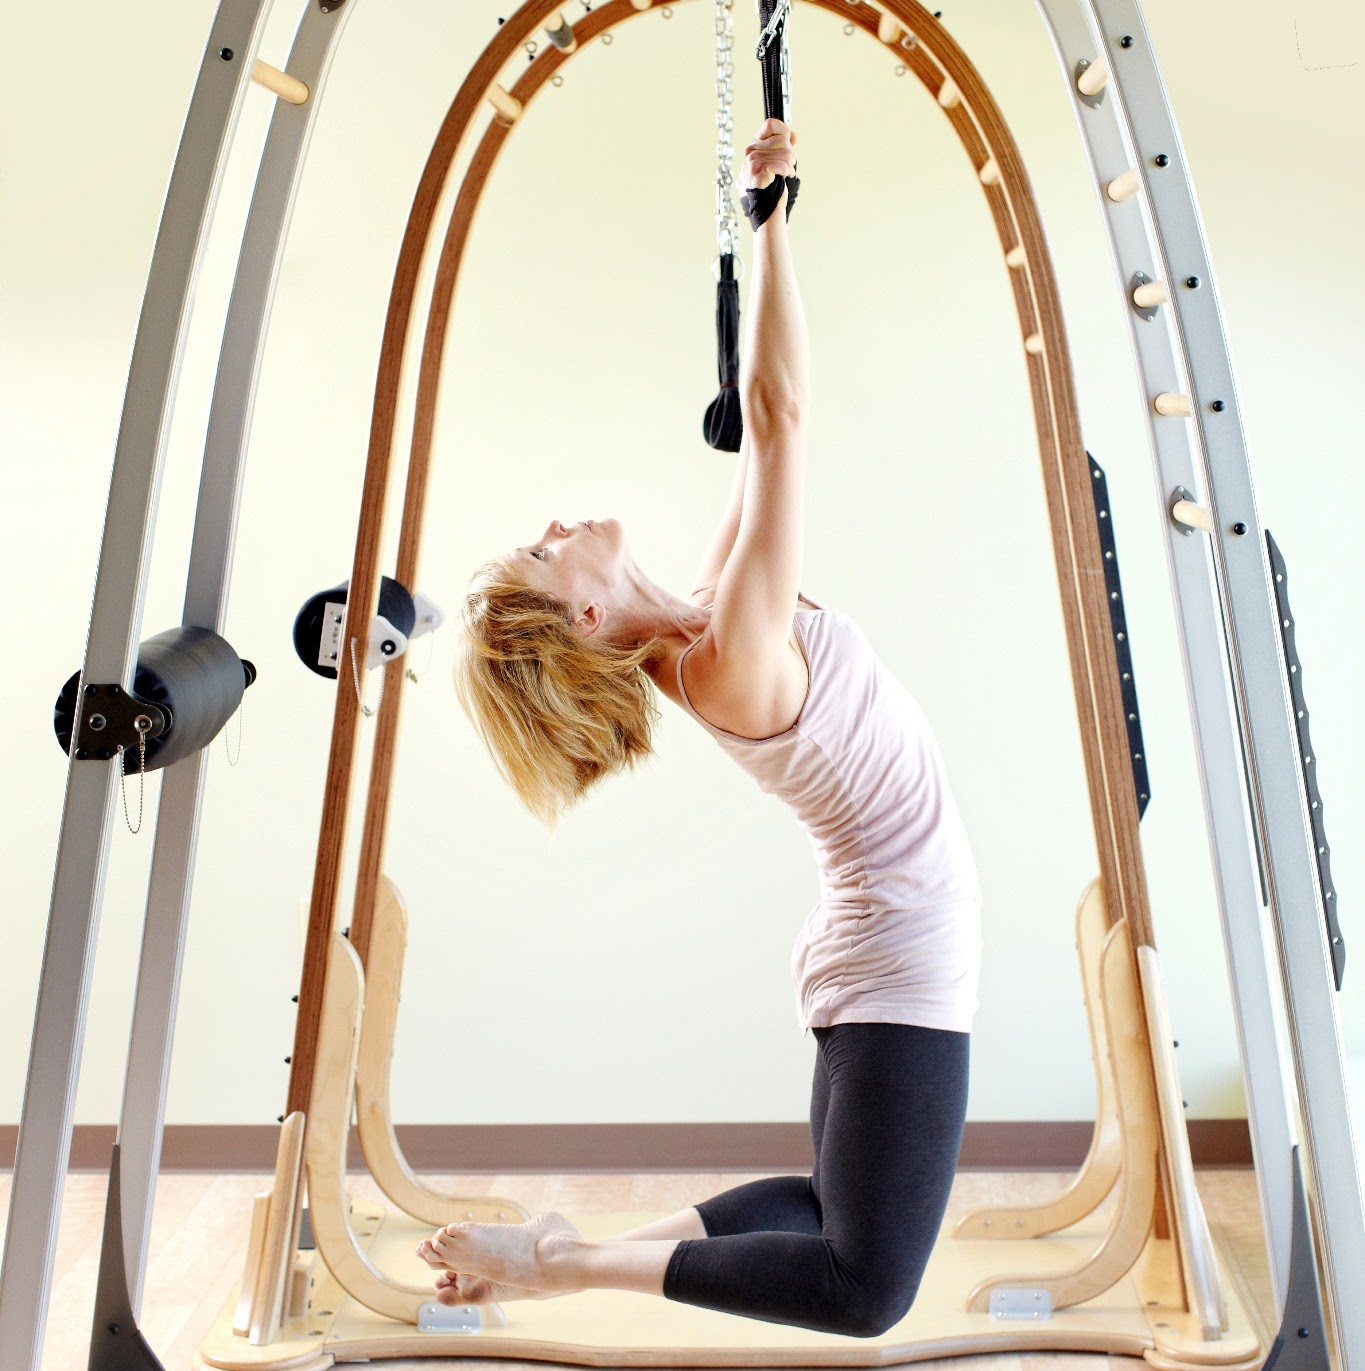 Motionlabpdx GYROTONIC and Pilates Studio - photo